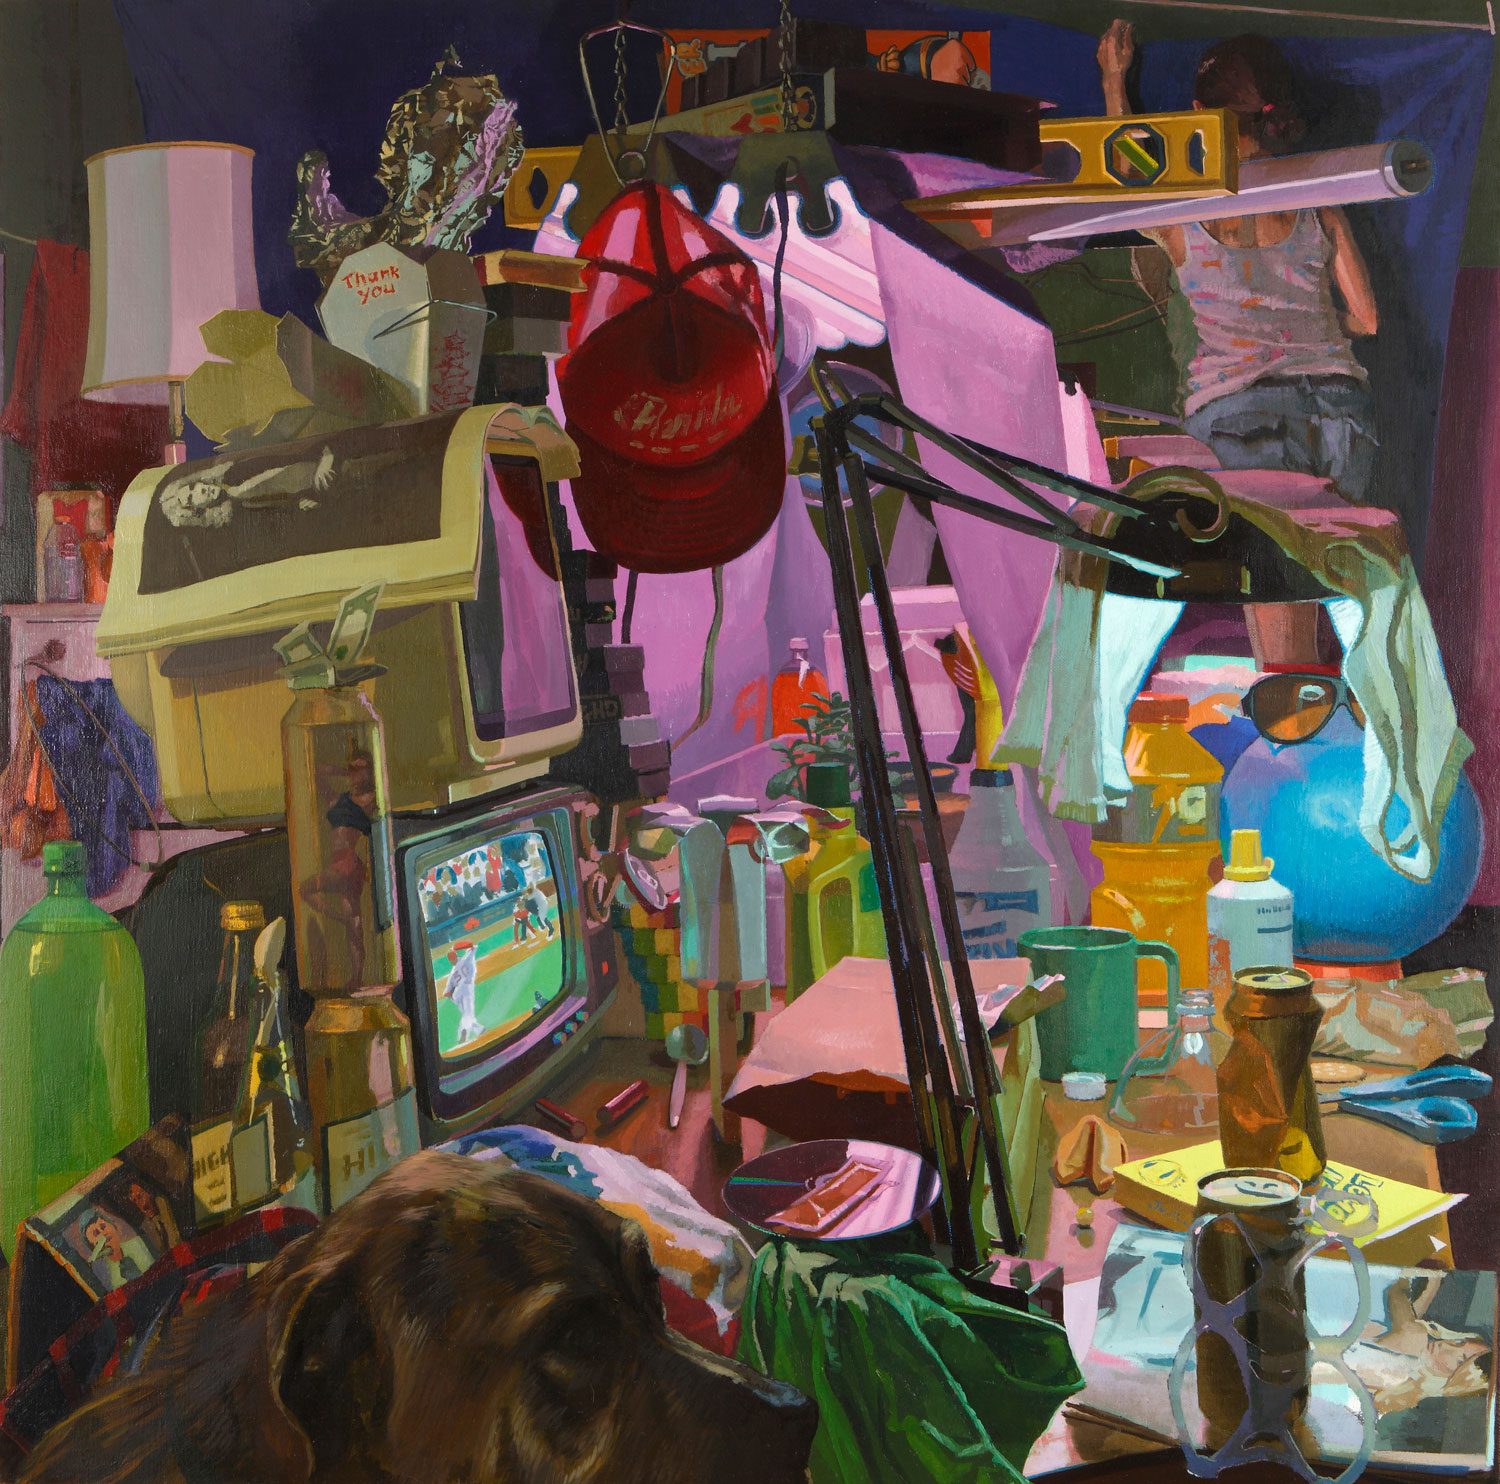 Dusty's Table, oil on linen on panel, 2012